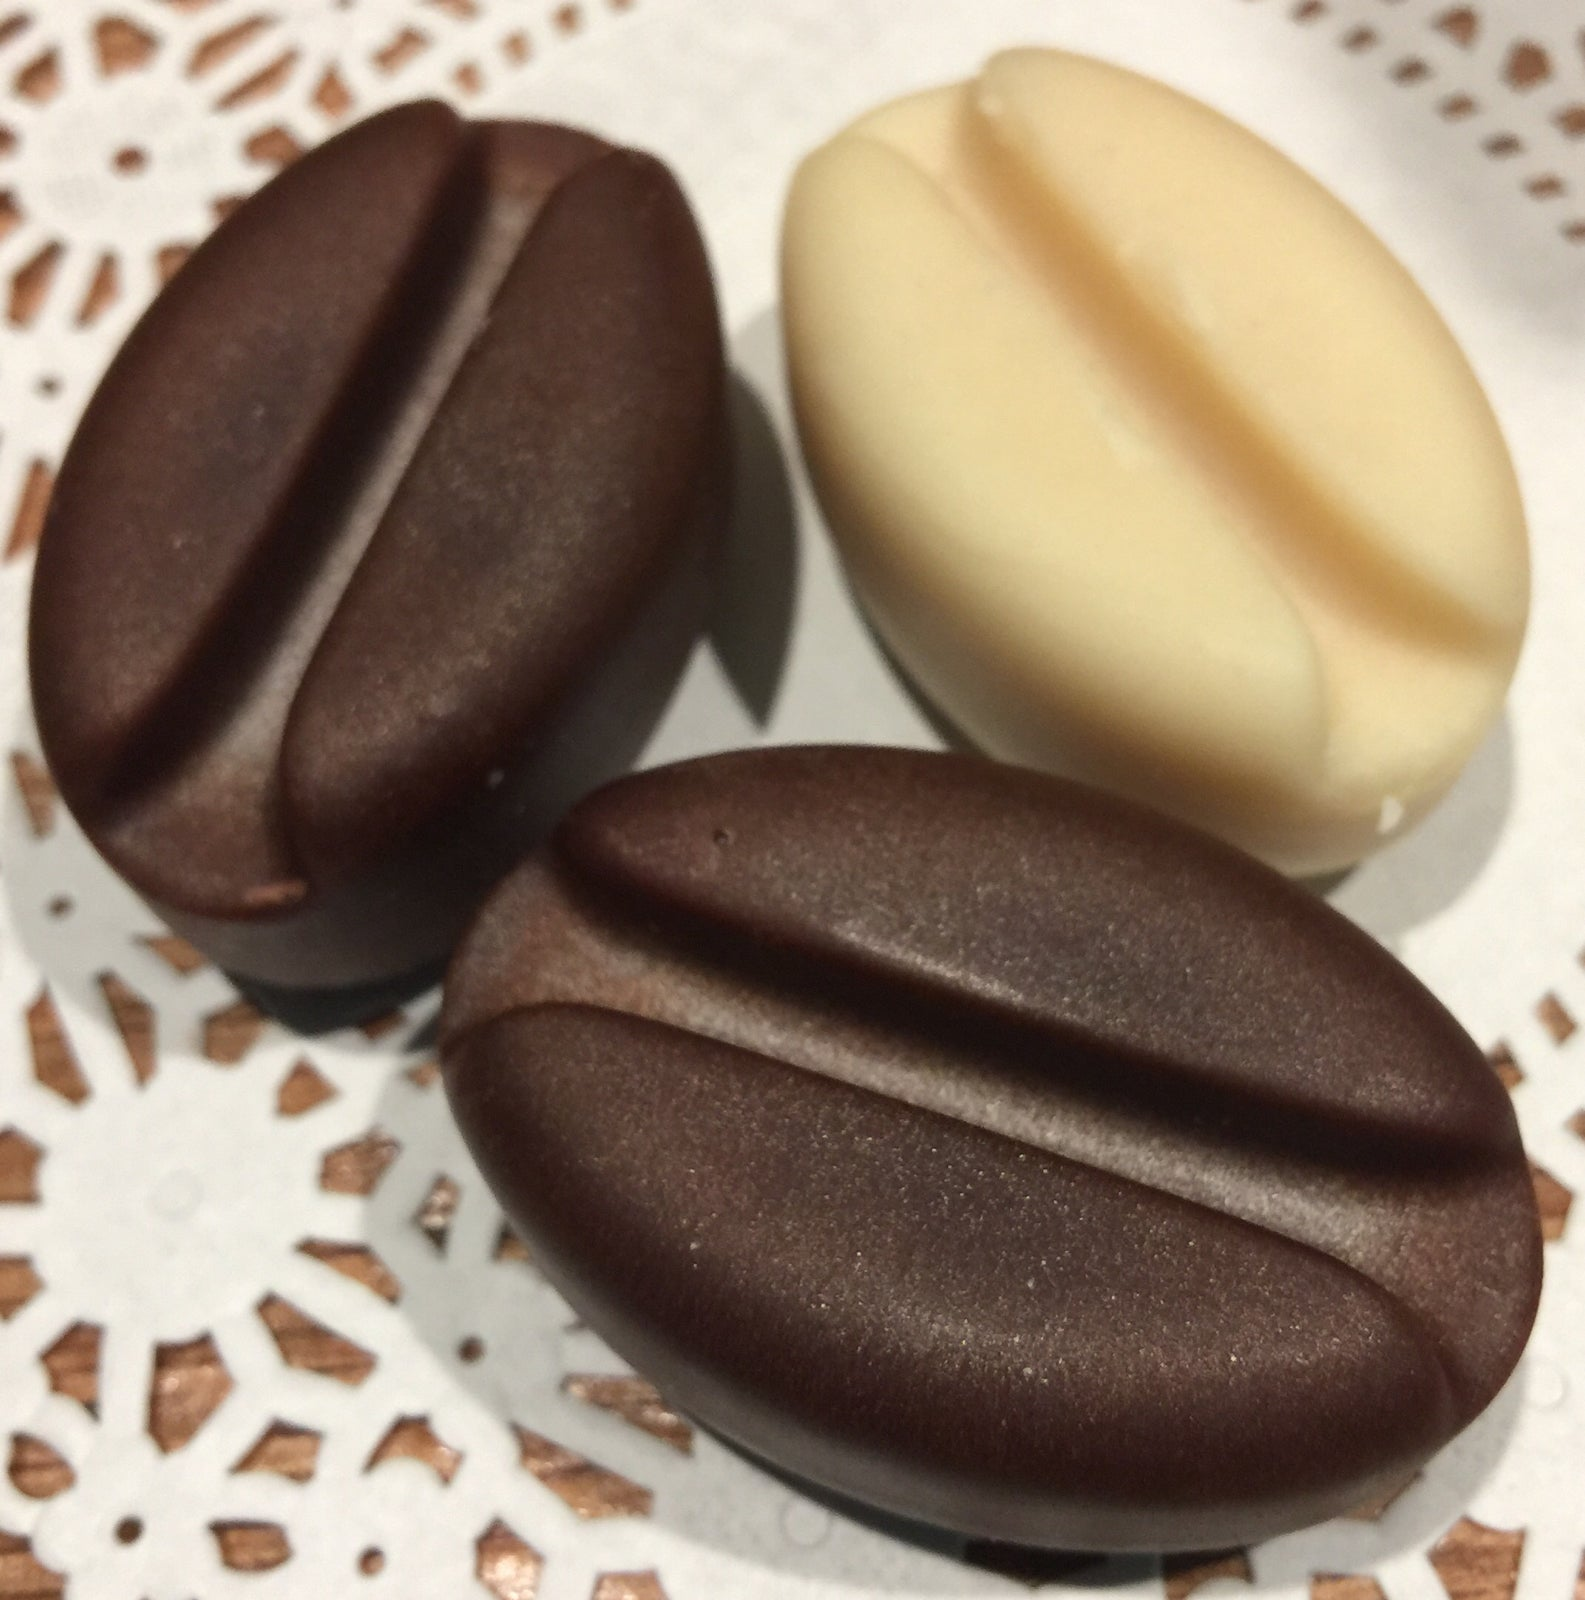 Java Beans Wax Melts A Crafty Barista